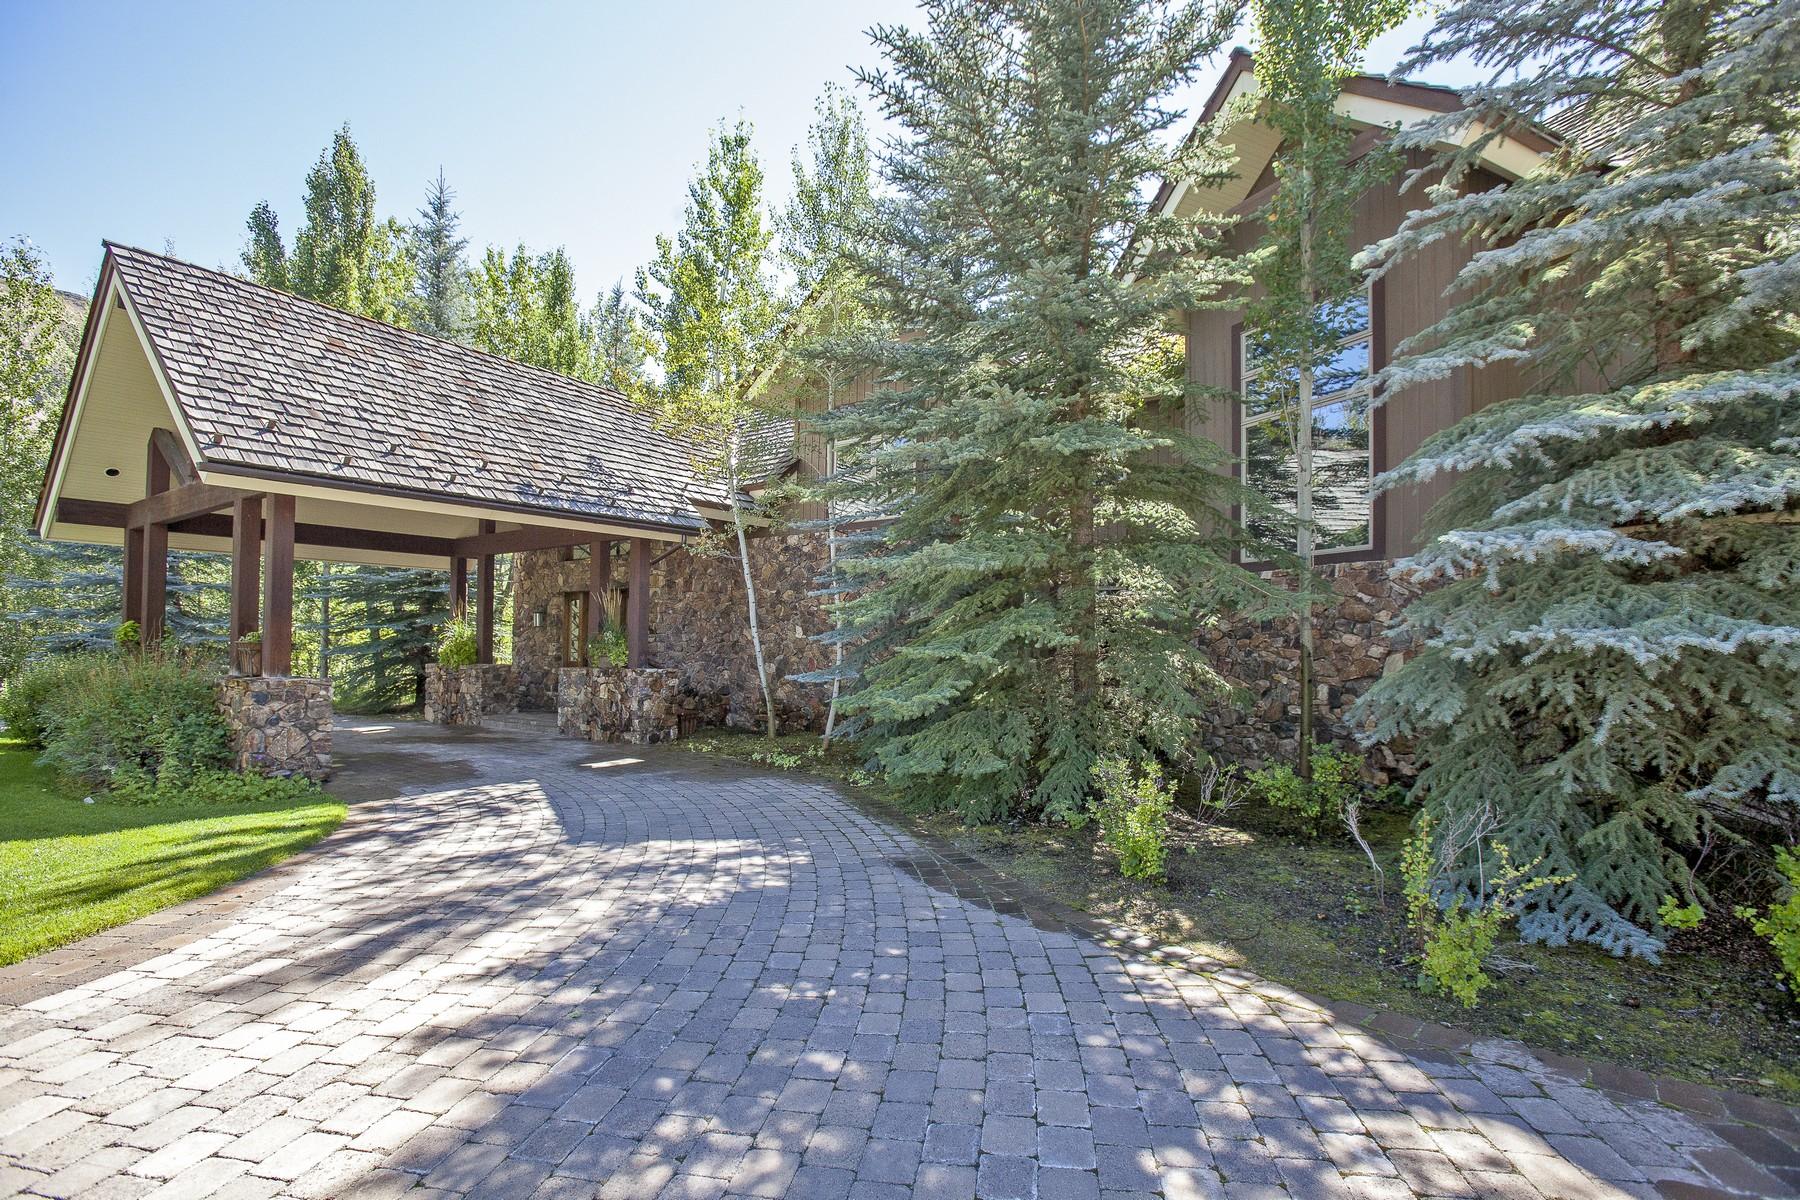 Single Family Home for Sale at Spectacular Home Near the Big Wood River 33 Cliffside Dr Ketchum, Idaho 83340 United States